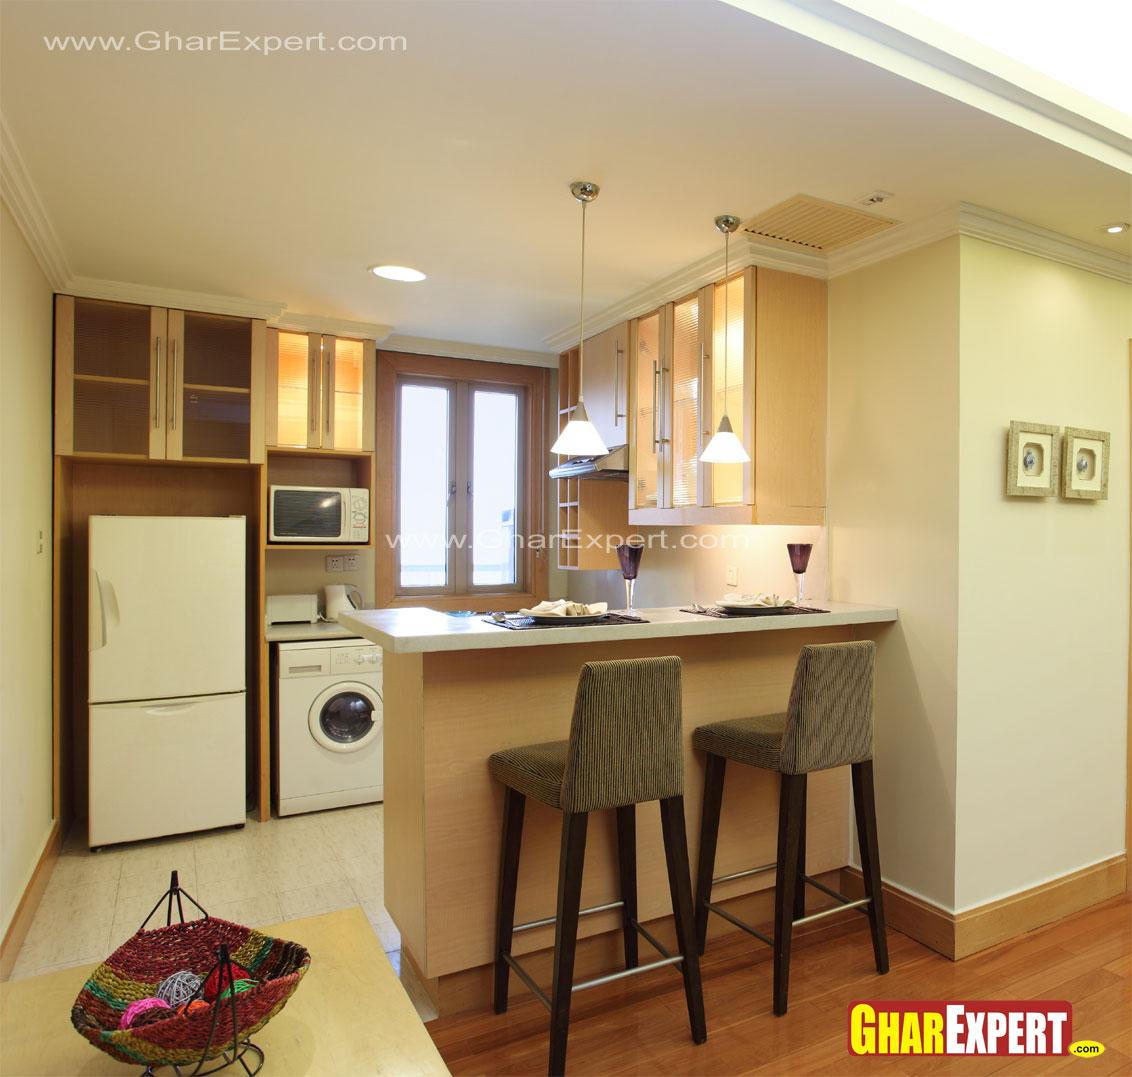 Breakfast Counter For Two In Kitchen